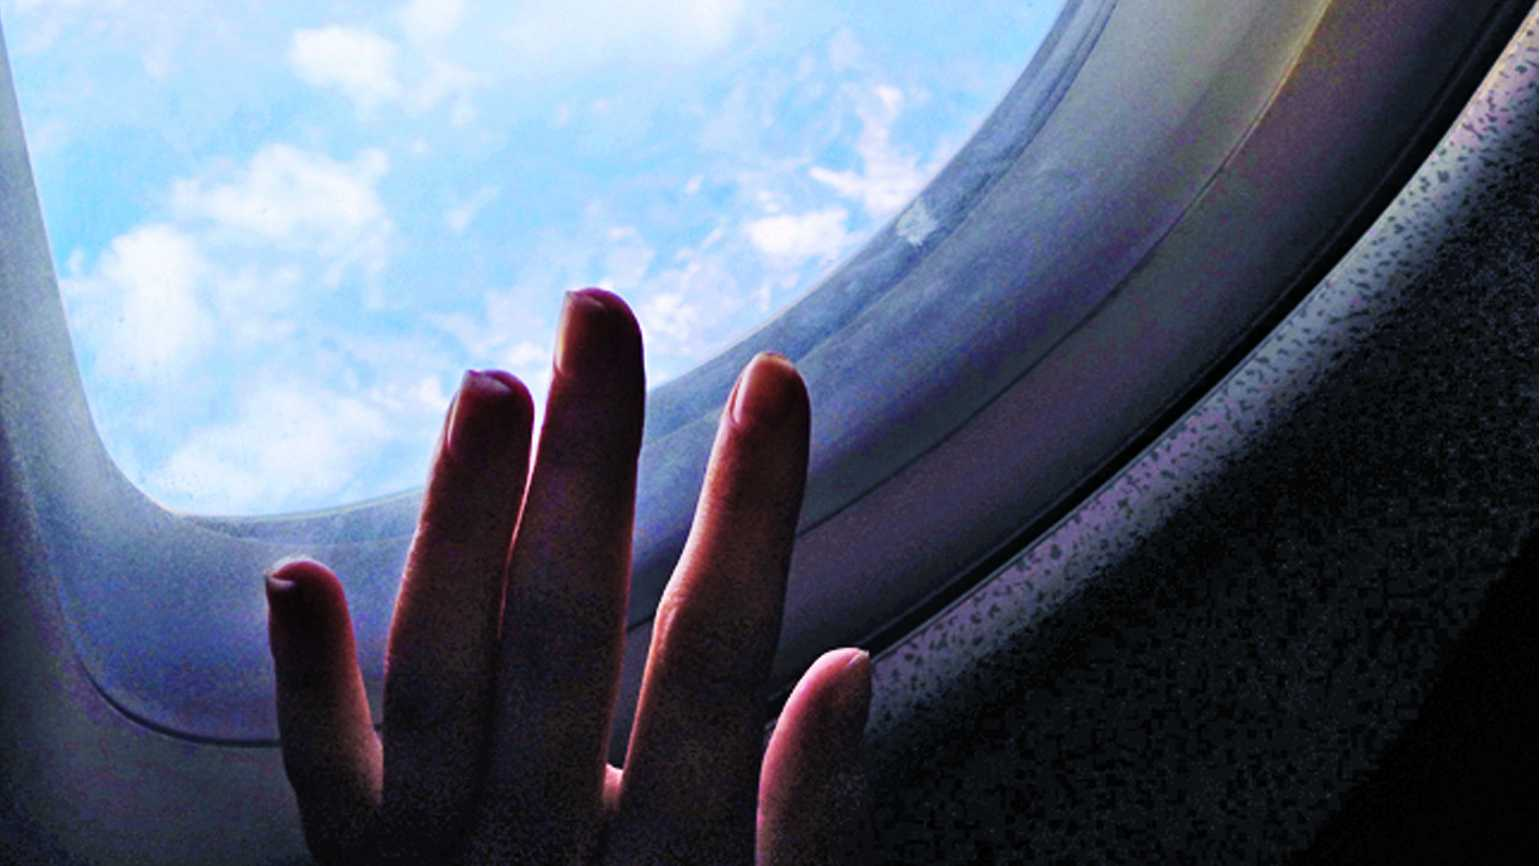 A woman's hand placed on an airplane window while in flight